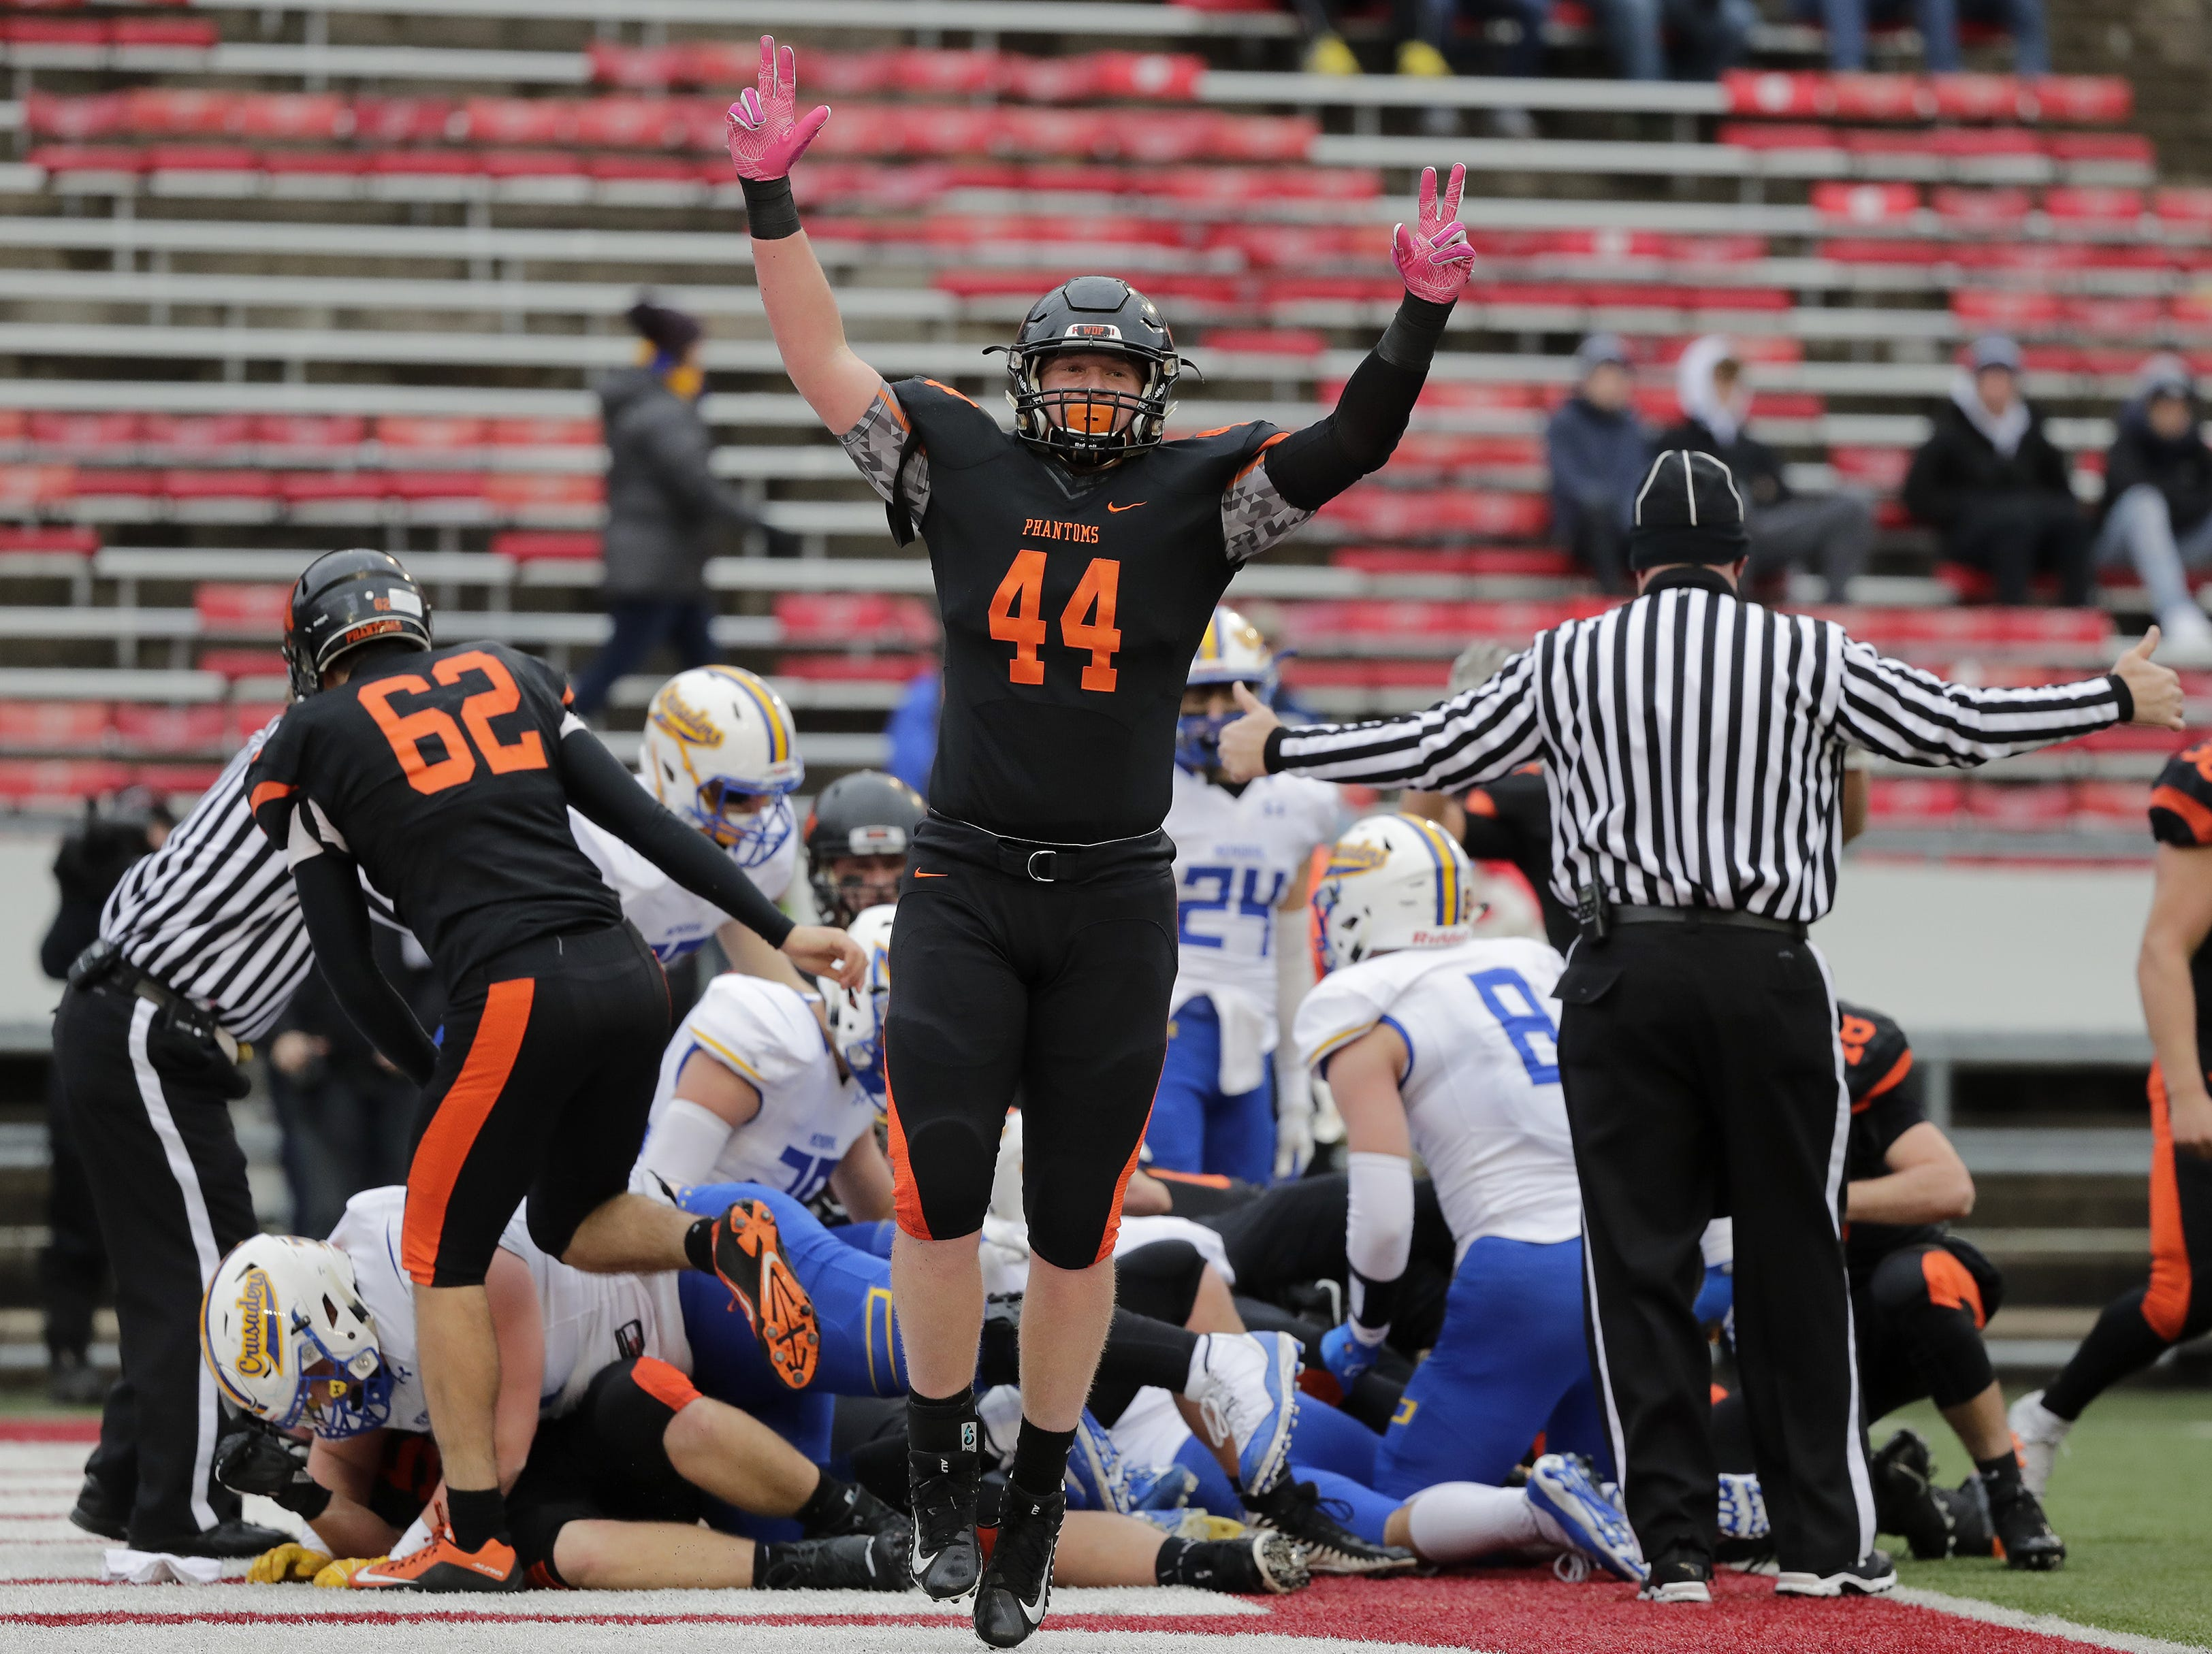 West De Pere's Jake Karchinski (44) celebrates after a Phantoms touchdown against Catholic Memorial in the WIAA Division 3 championship game at Camp Randall Stadium on Friday, November 16, 2018 in Madison, Wis.